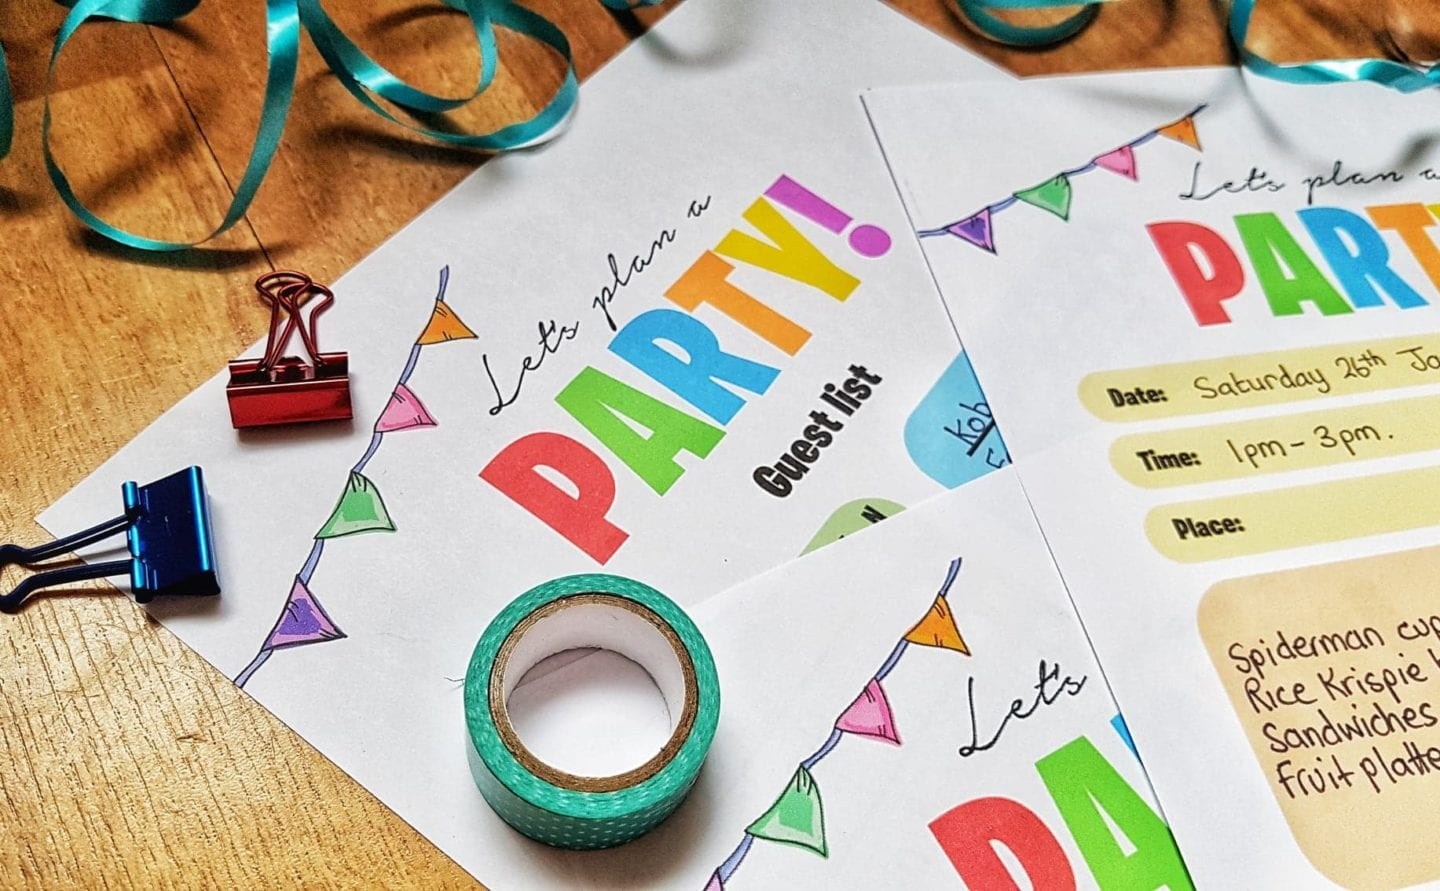 Let's plan a party! | Free Party Planner Printables